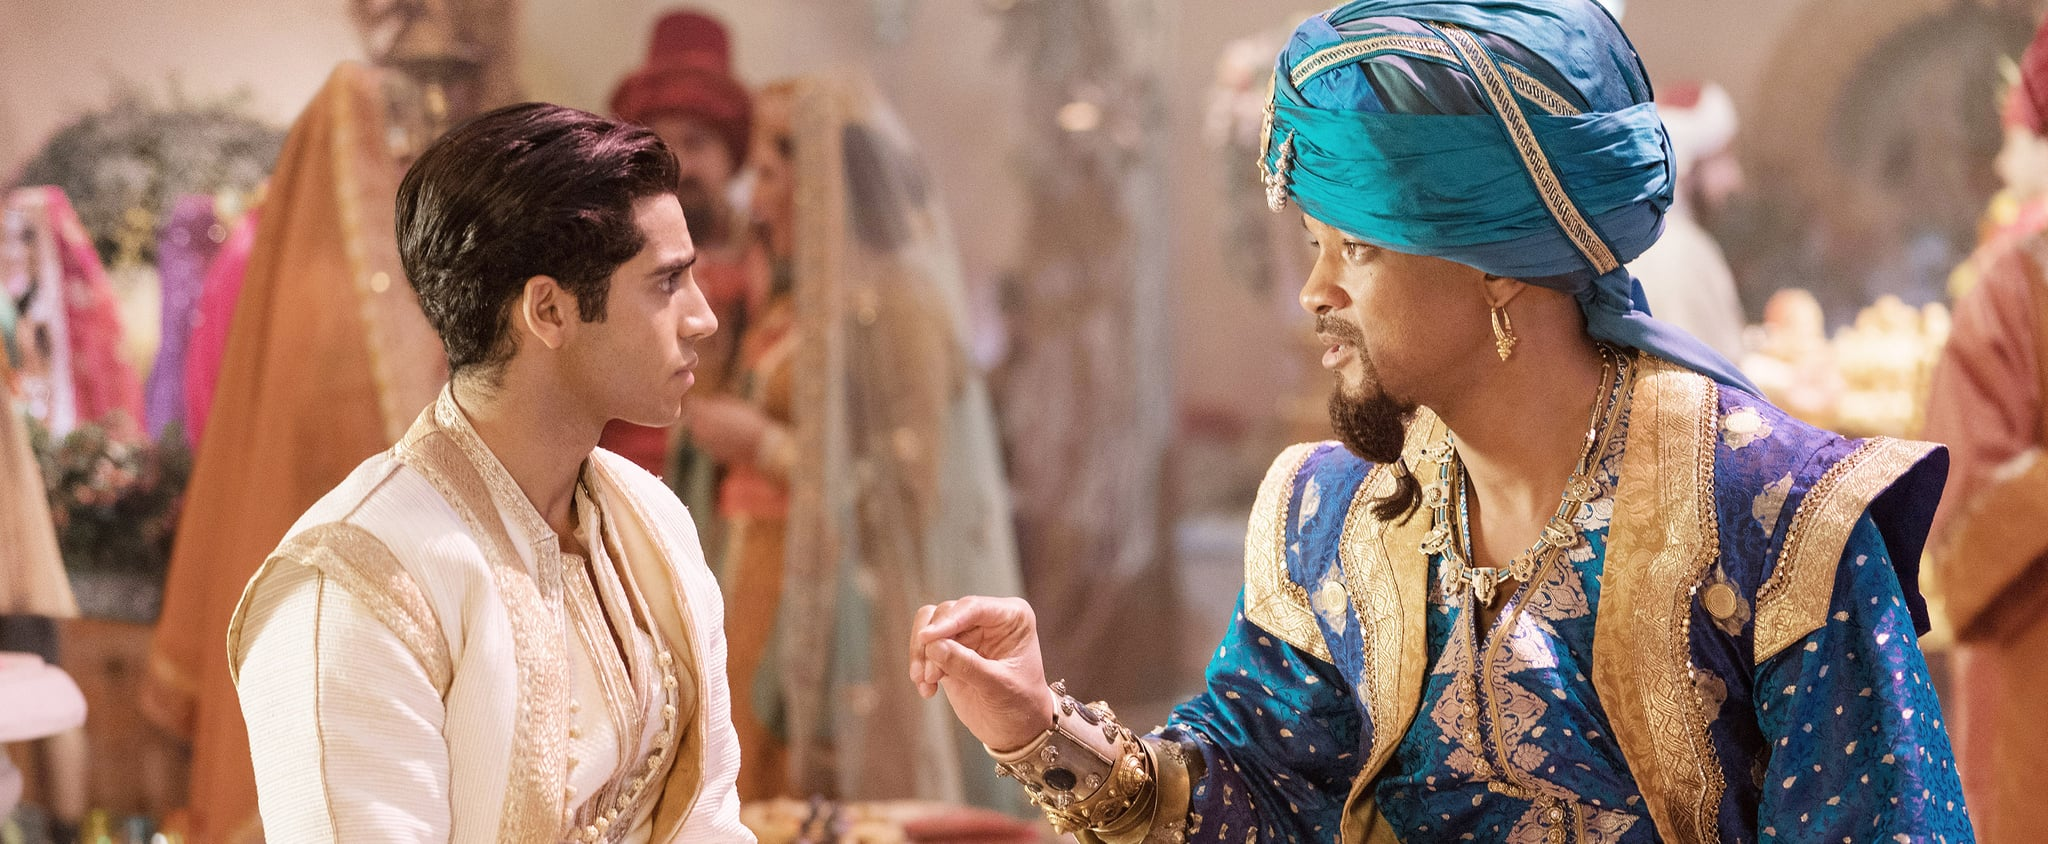 Is There a Postcredit Scene in the 2019 Aladdin Reboot?